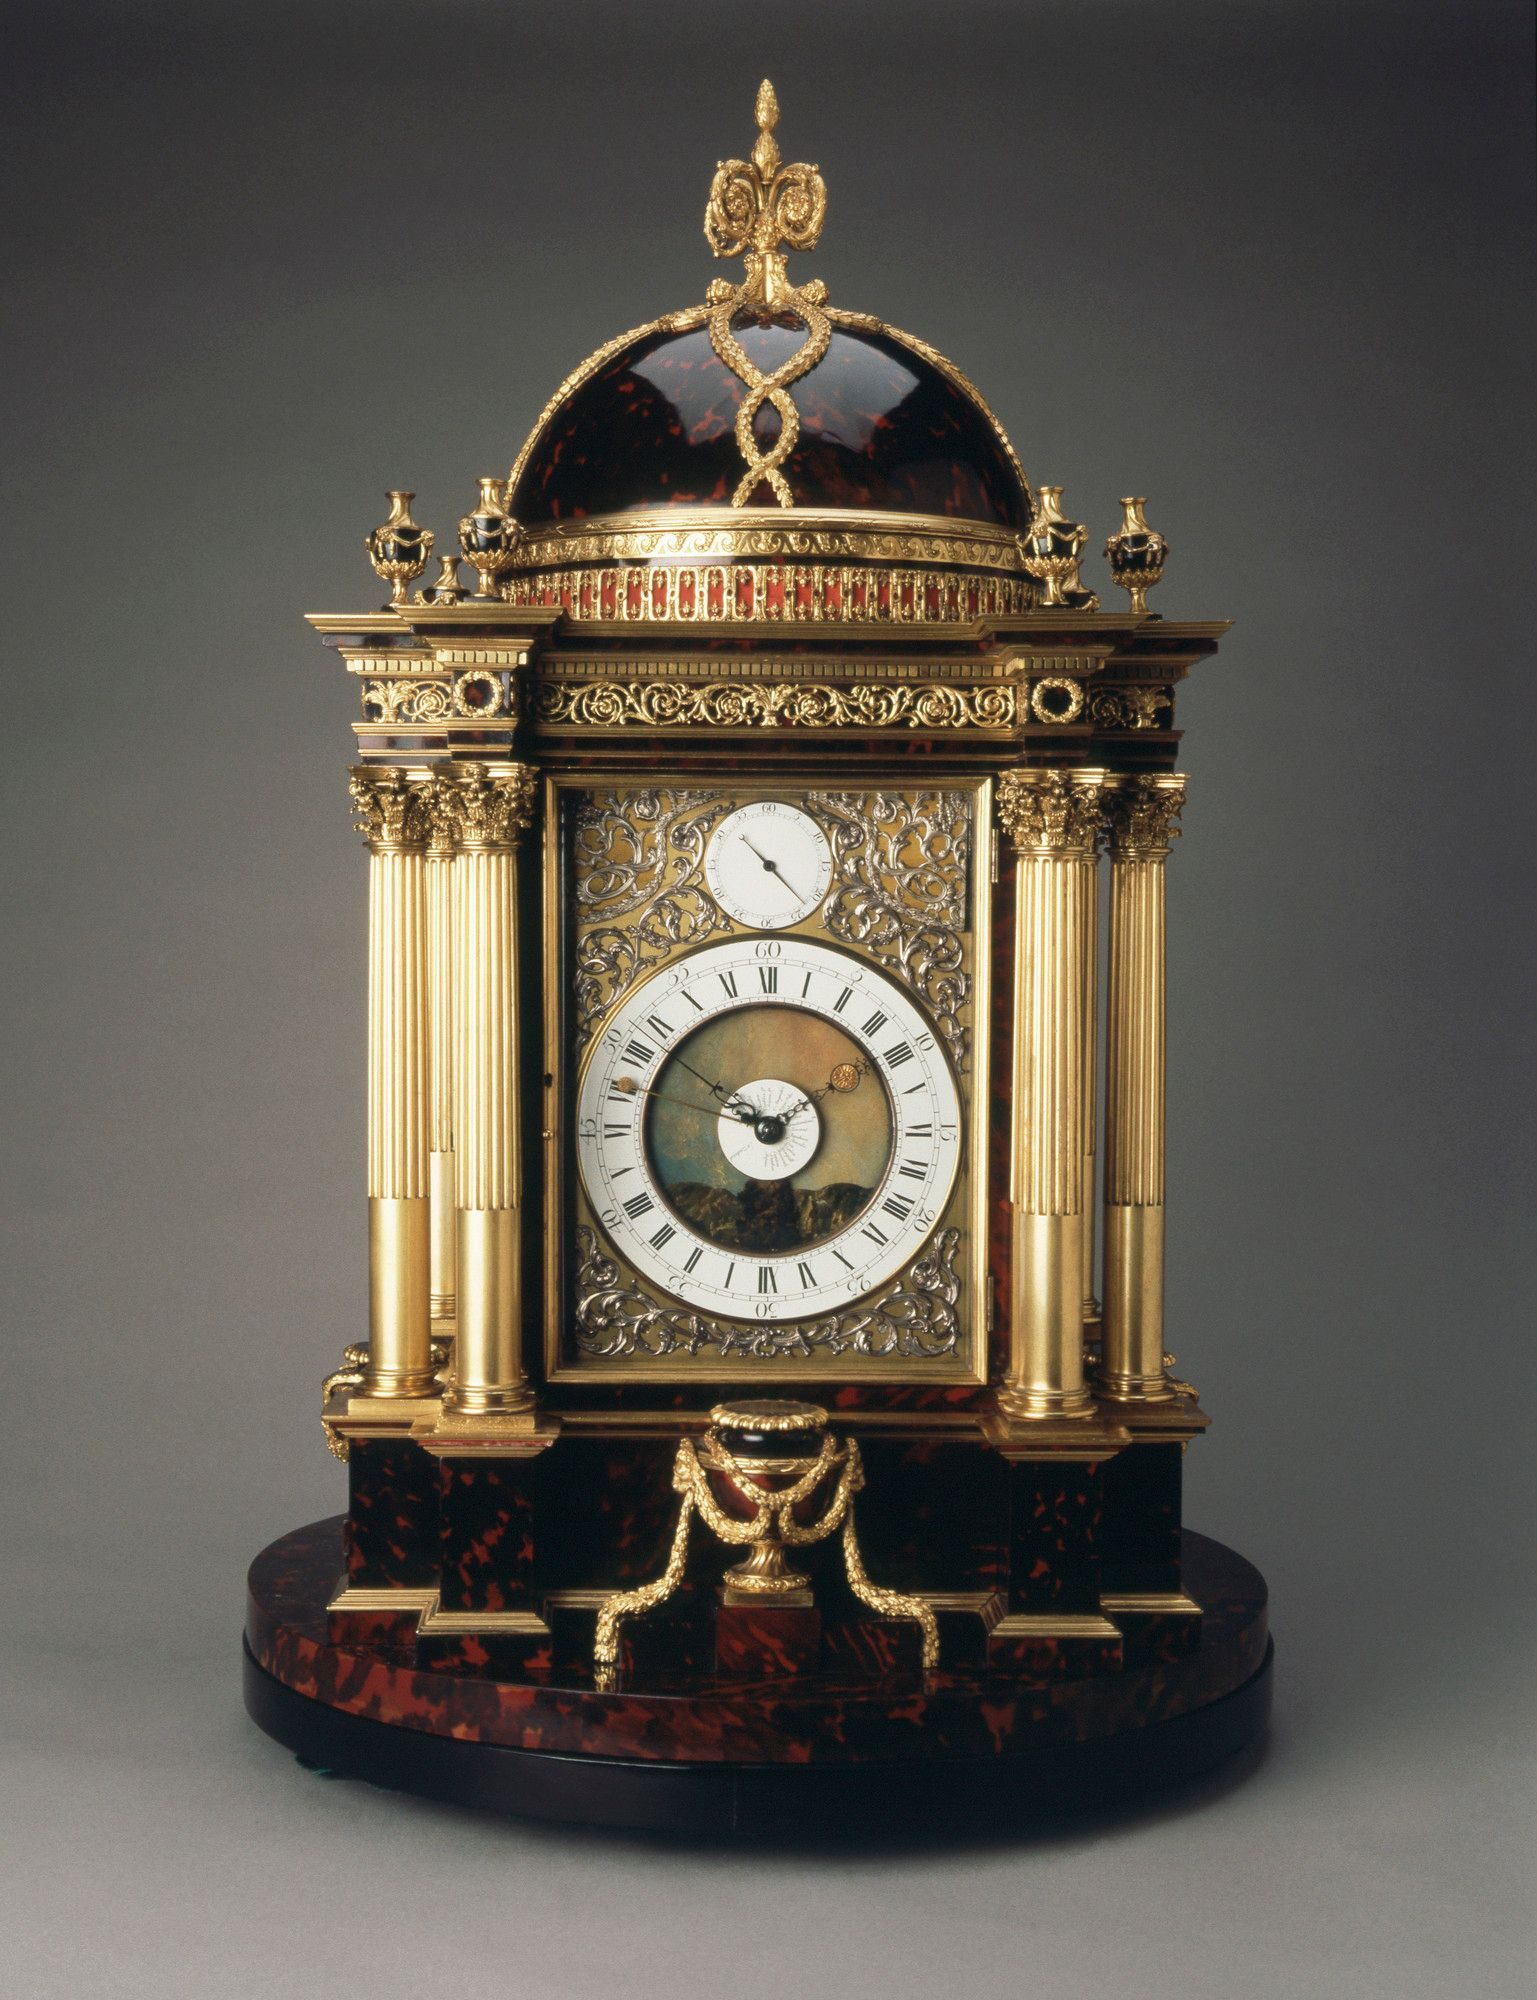 A clock made by Christopher Pinchbeck, from the Royal Collection Trust.